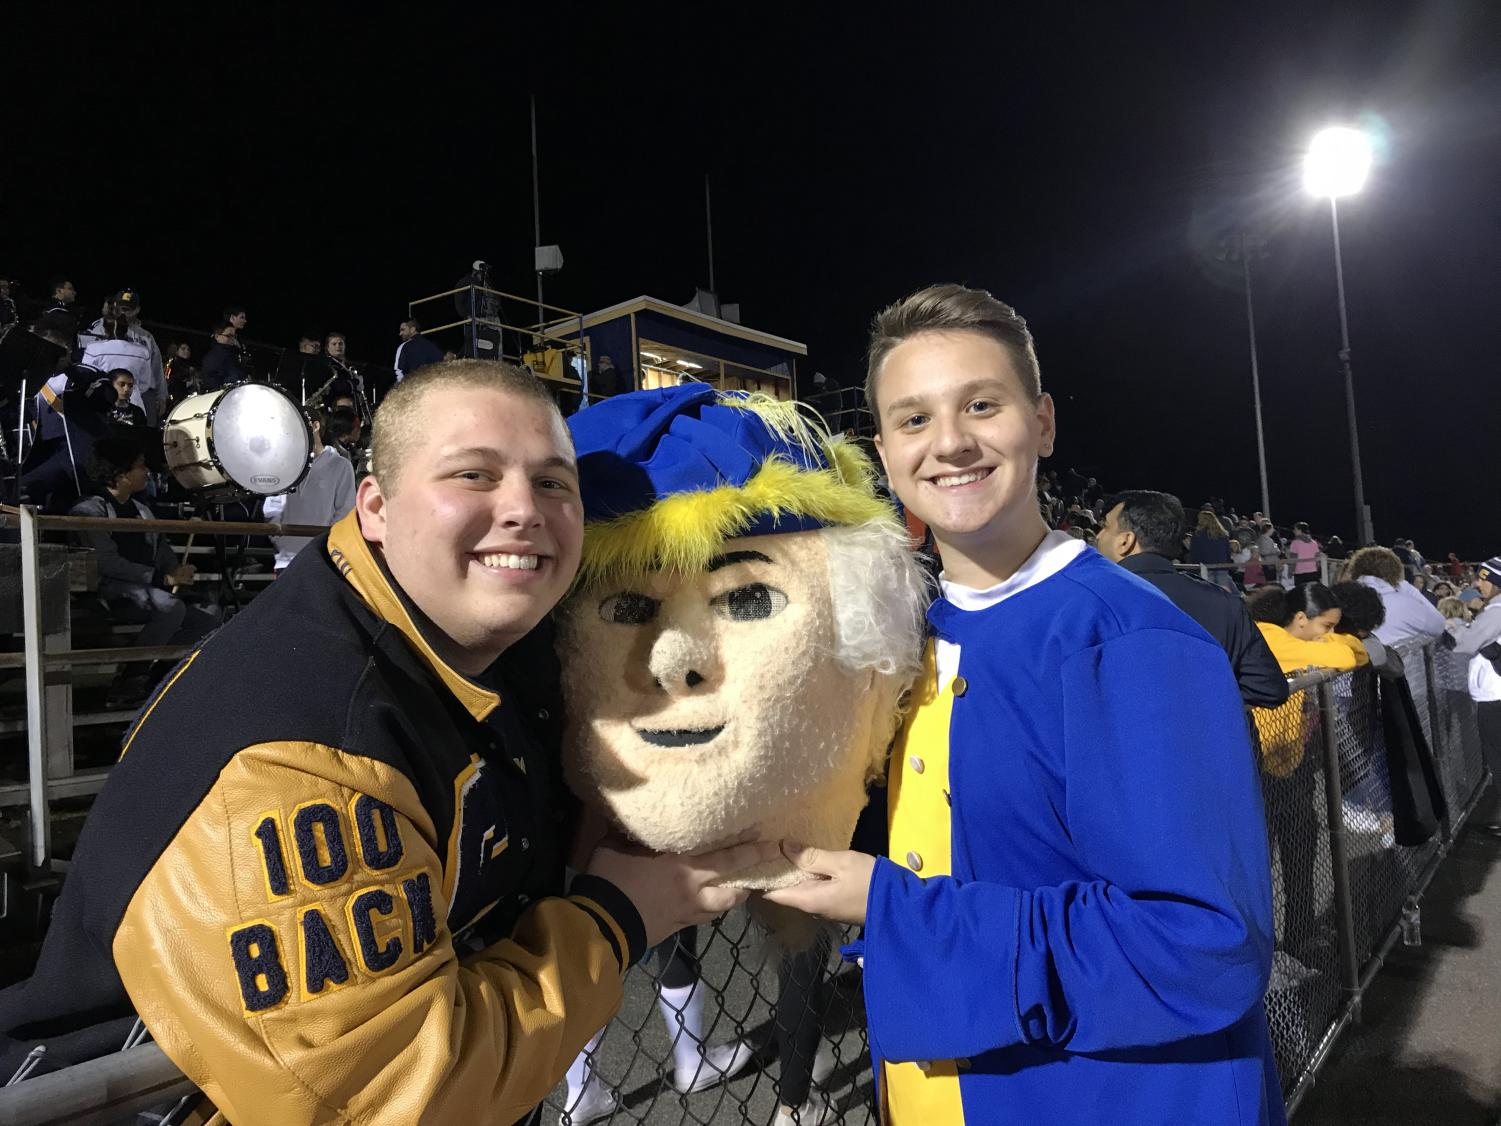 Because of the Homecoming game, Piccinnini (left) decided it was a good time to visit Colonia High School to see how Benson (right) was doing as the mascot.